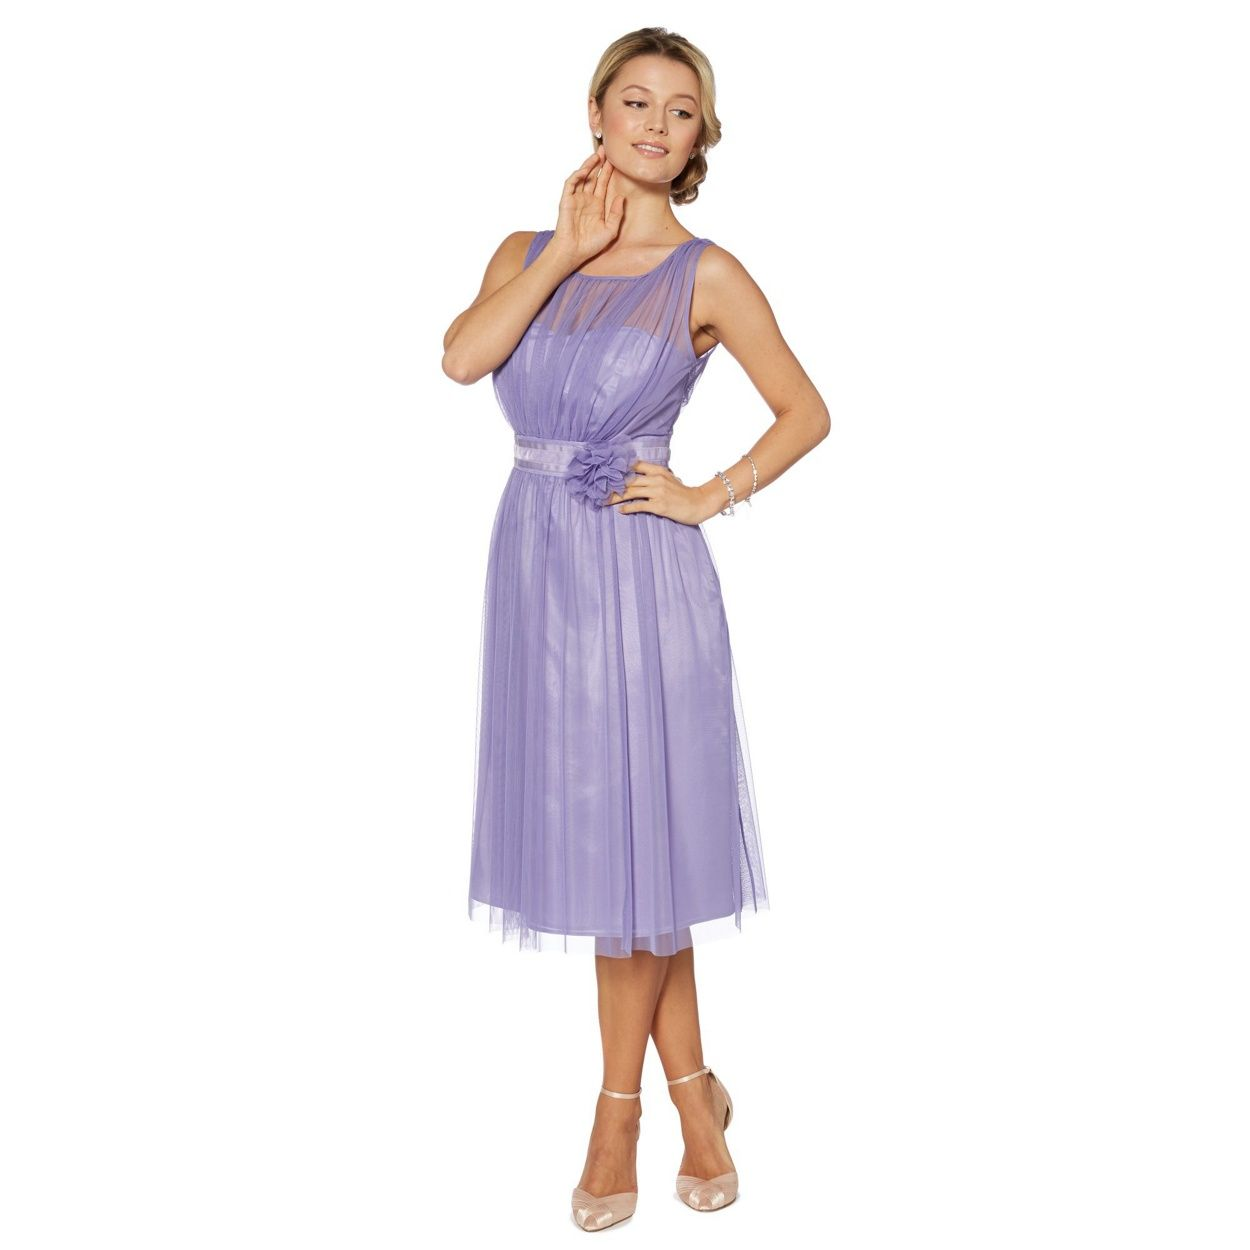 Debut lilac mesh build corsage midi dress at debenhams debut lilac mesh build corsage midi dress at debenhams debenhams wedding ombrellifo Image collections